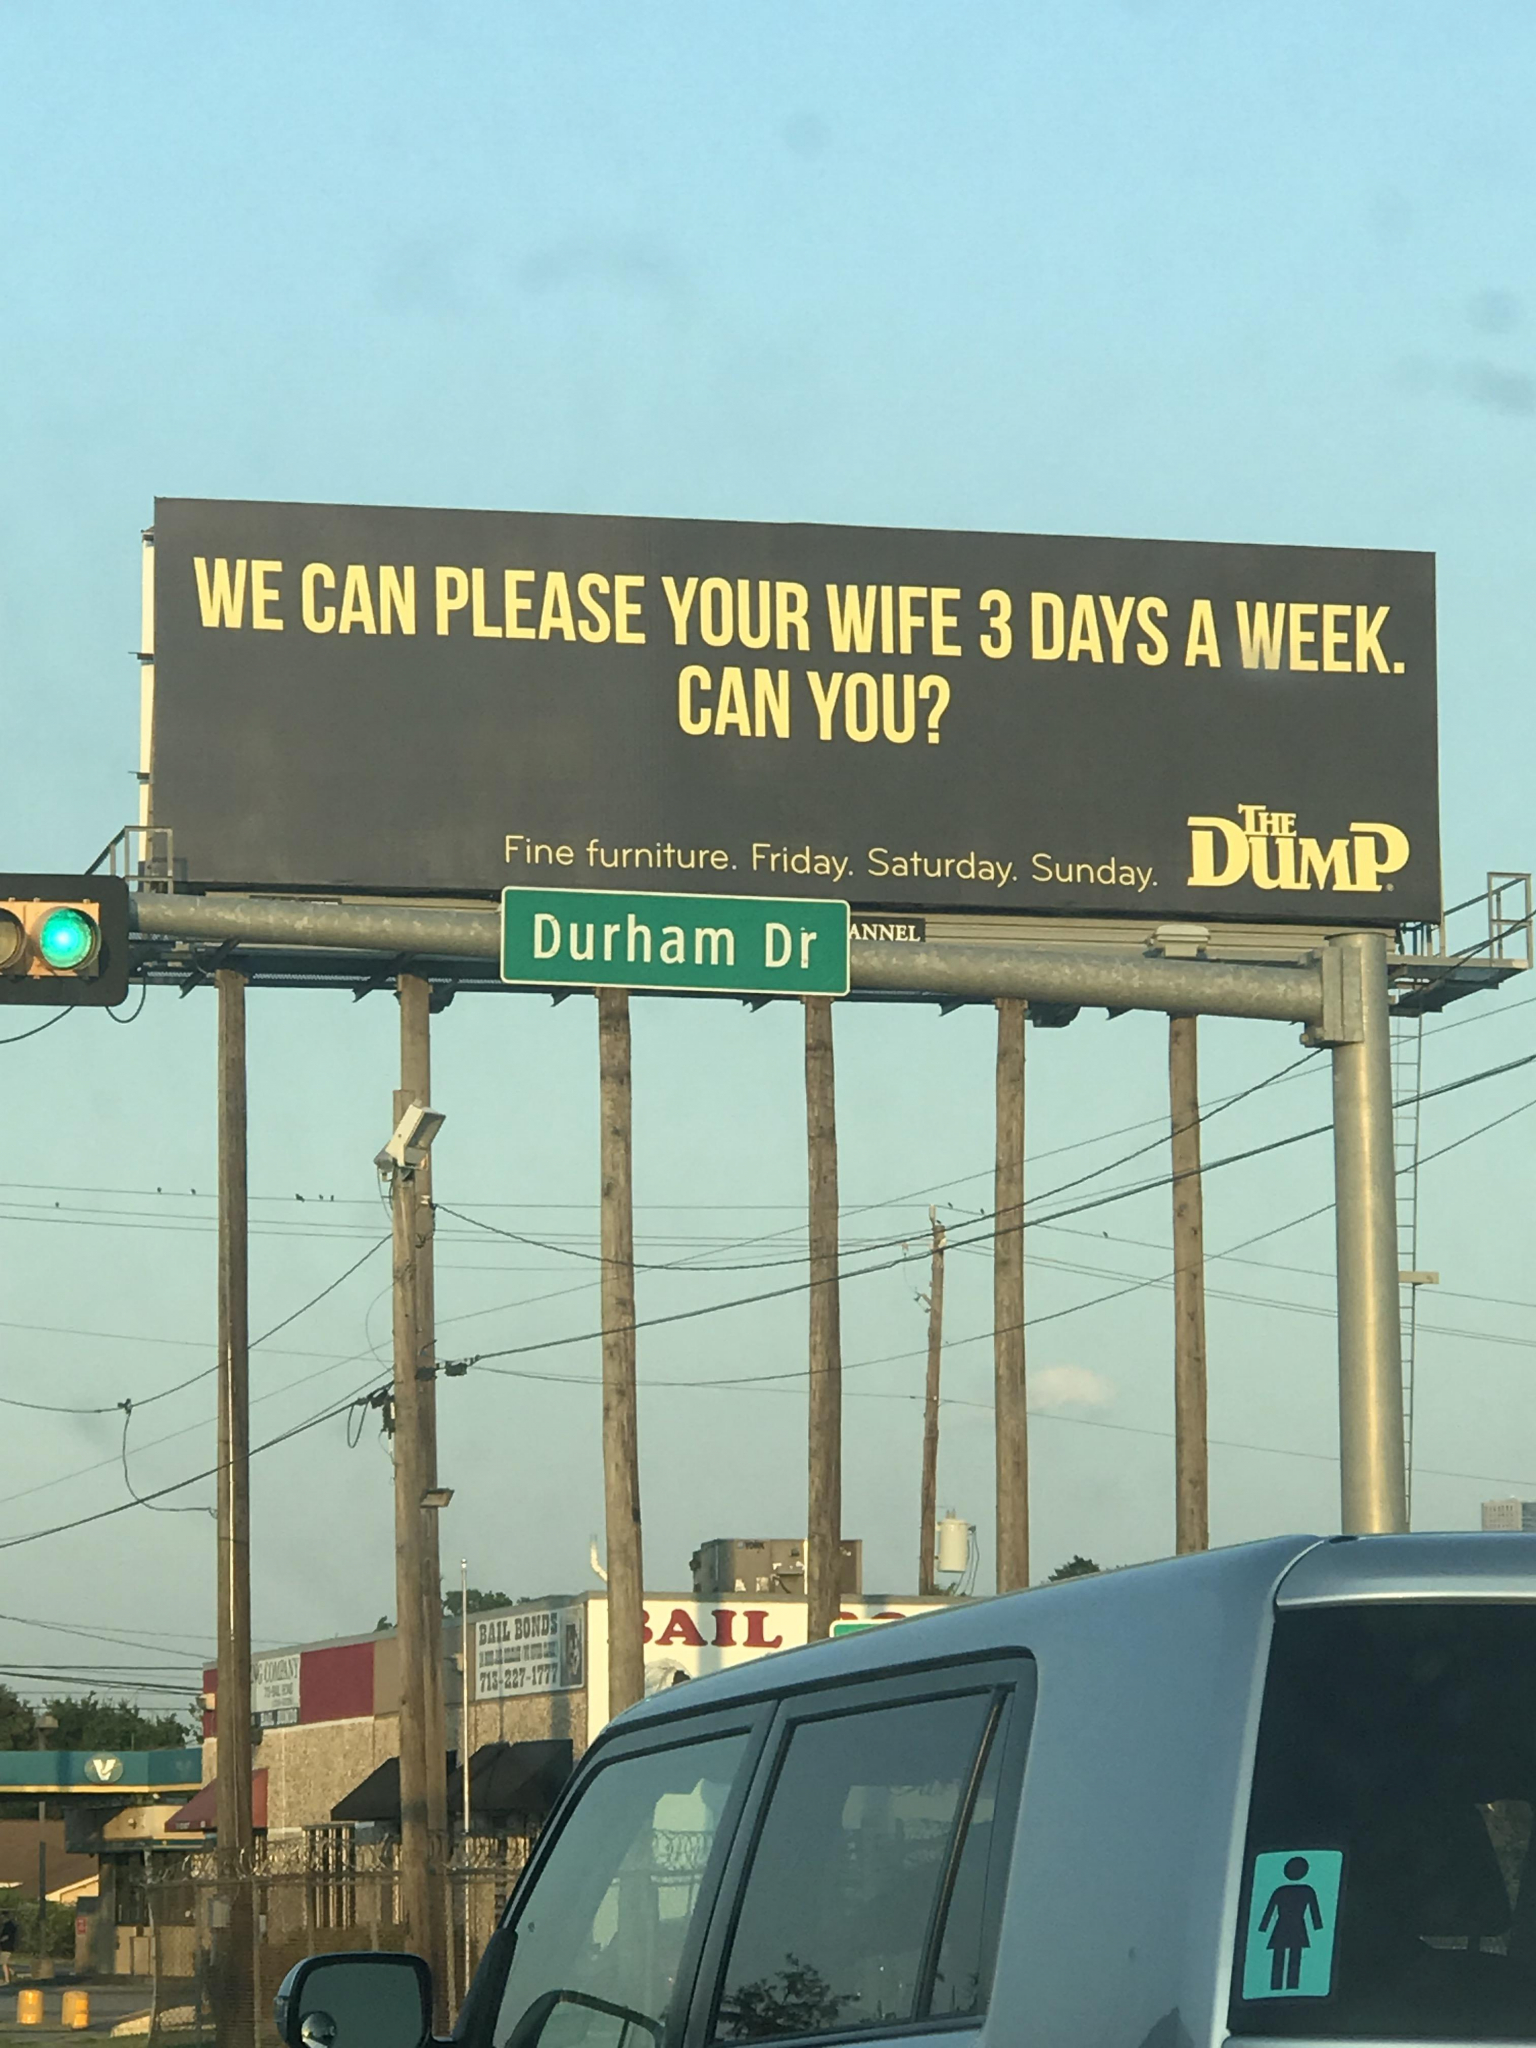 houston furniture store 39 s suggestive billboard causes stir on social media houston chronicle. Black Bedroom Furniture Sets. Home Design Ideas